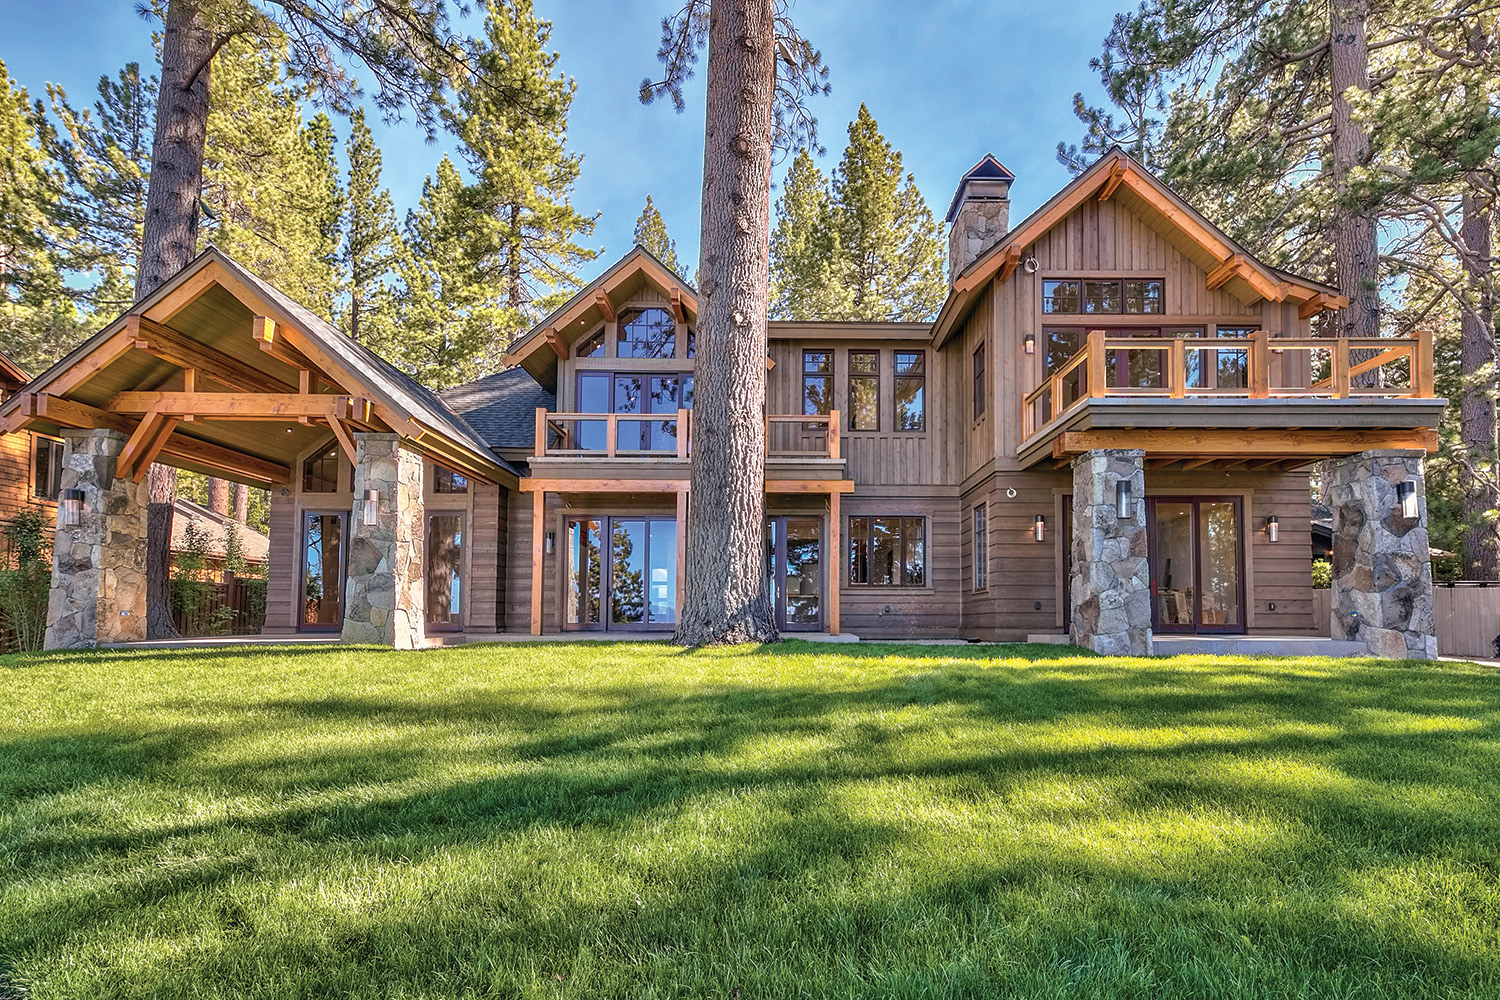 1170 Vivian Lane, new lakefront construction listed for $16,795,000